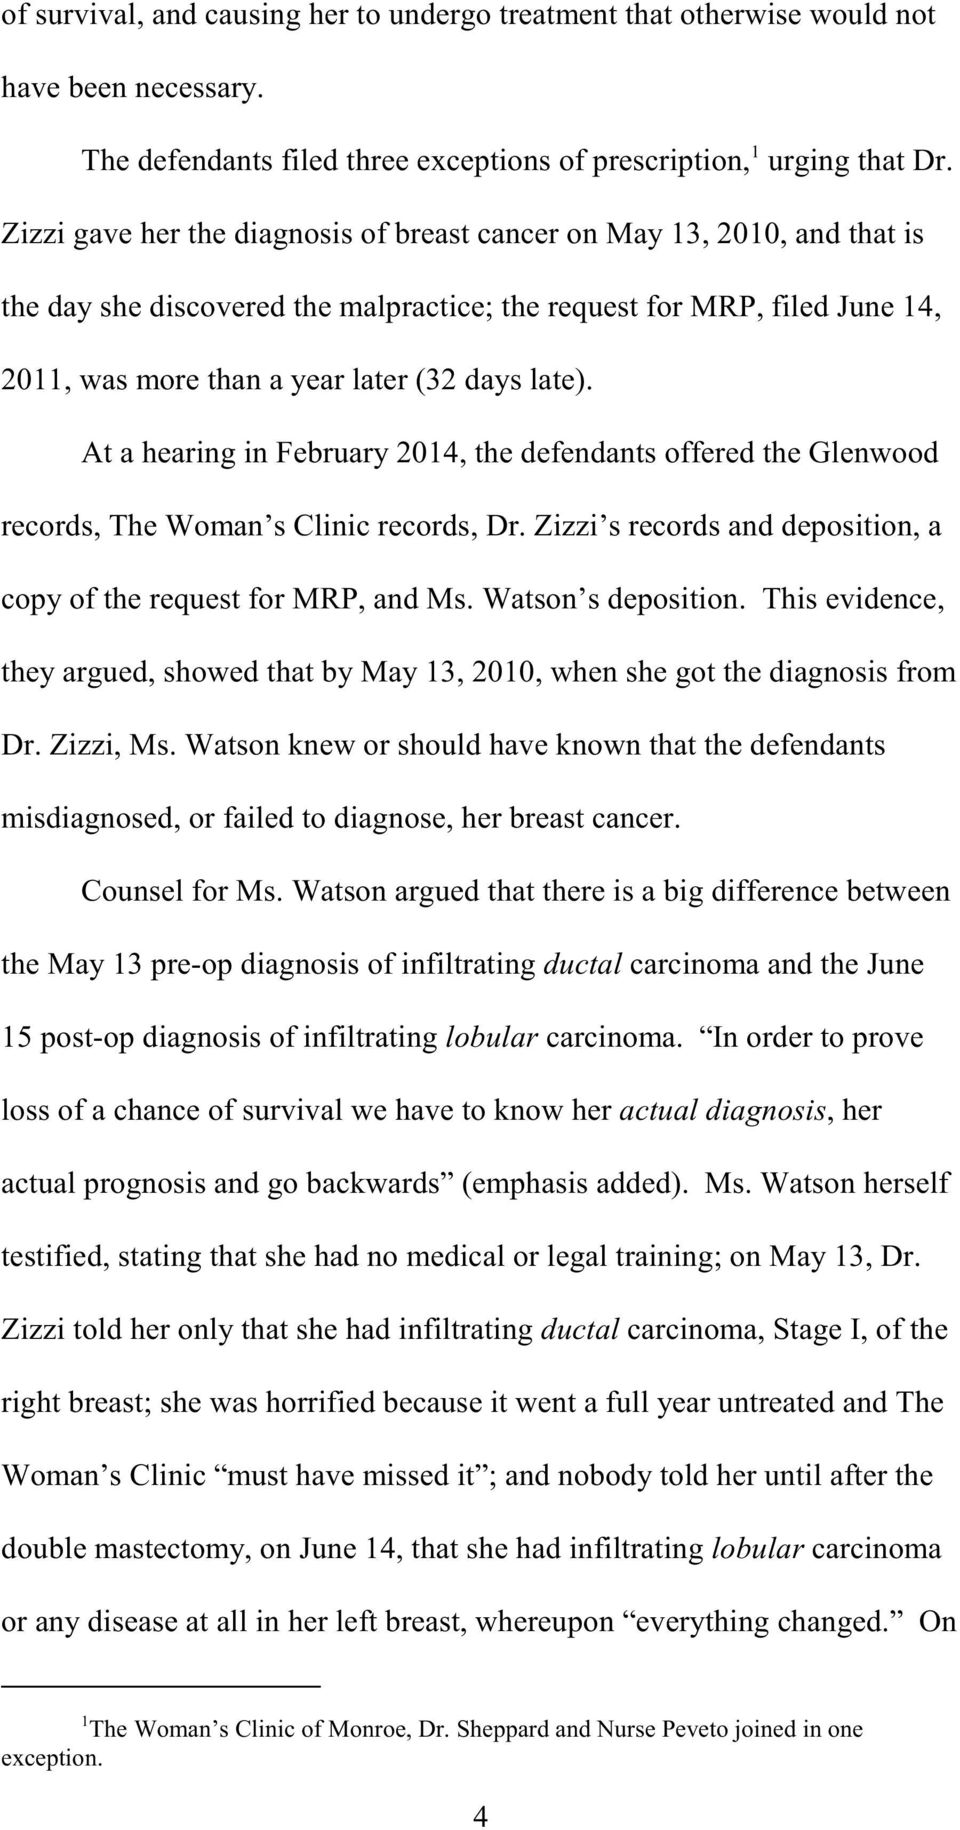 At a hearing in February 2014, the defendants offered the Glenwood records, The Woman s Clinic records, Dr. Zizzi s records and deposition, a copy of the request for MRP, and Ms. Watson s deposition.